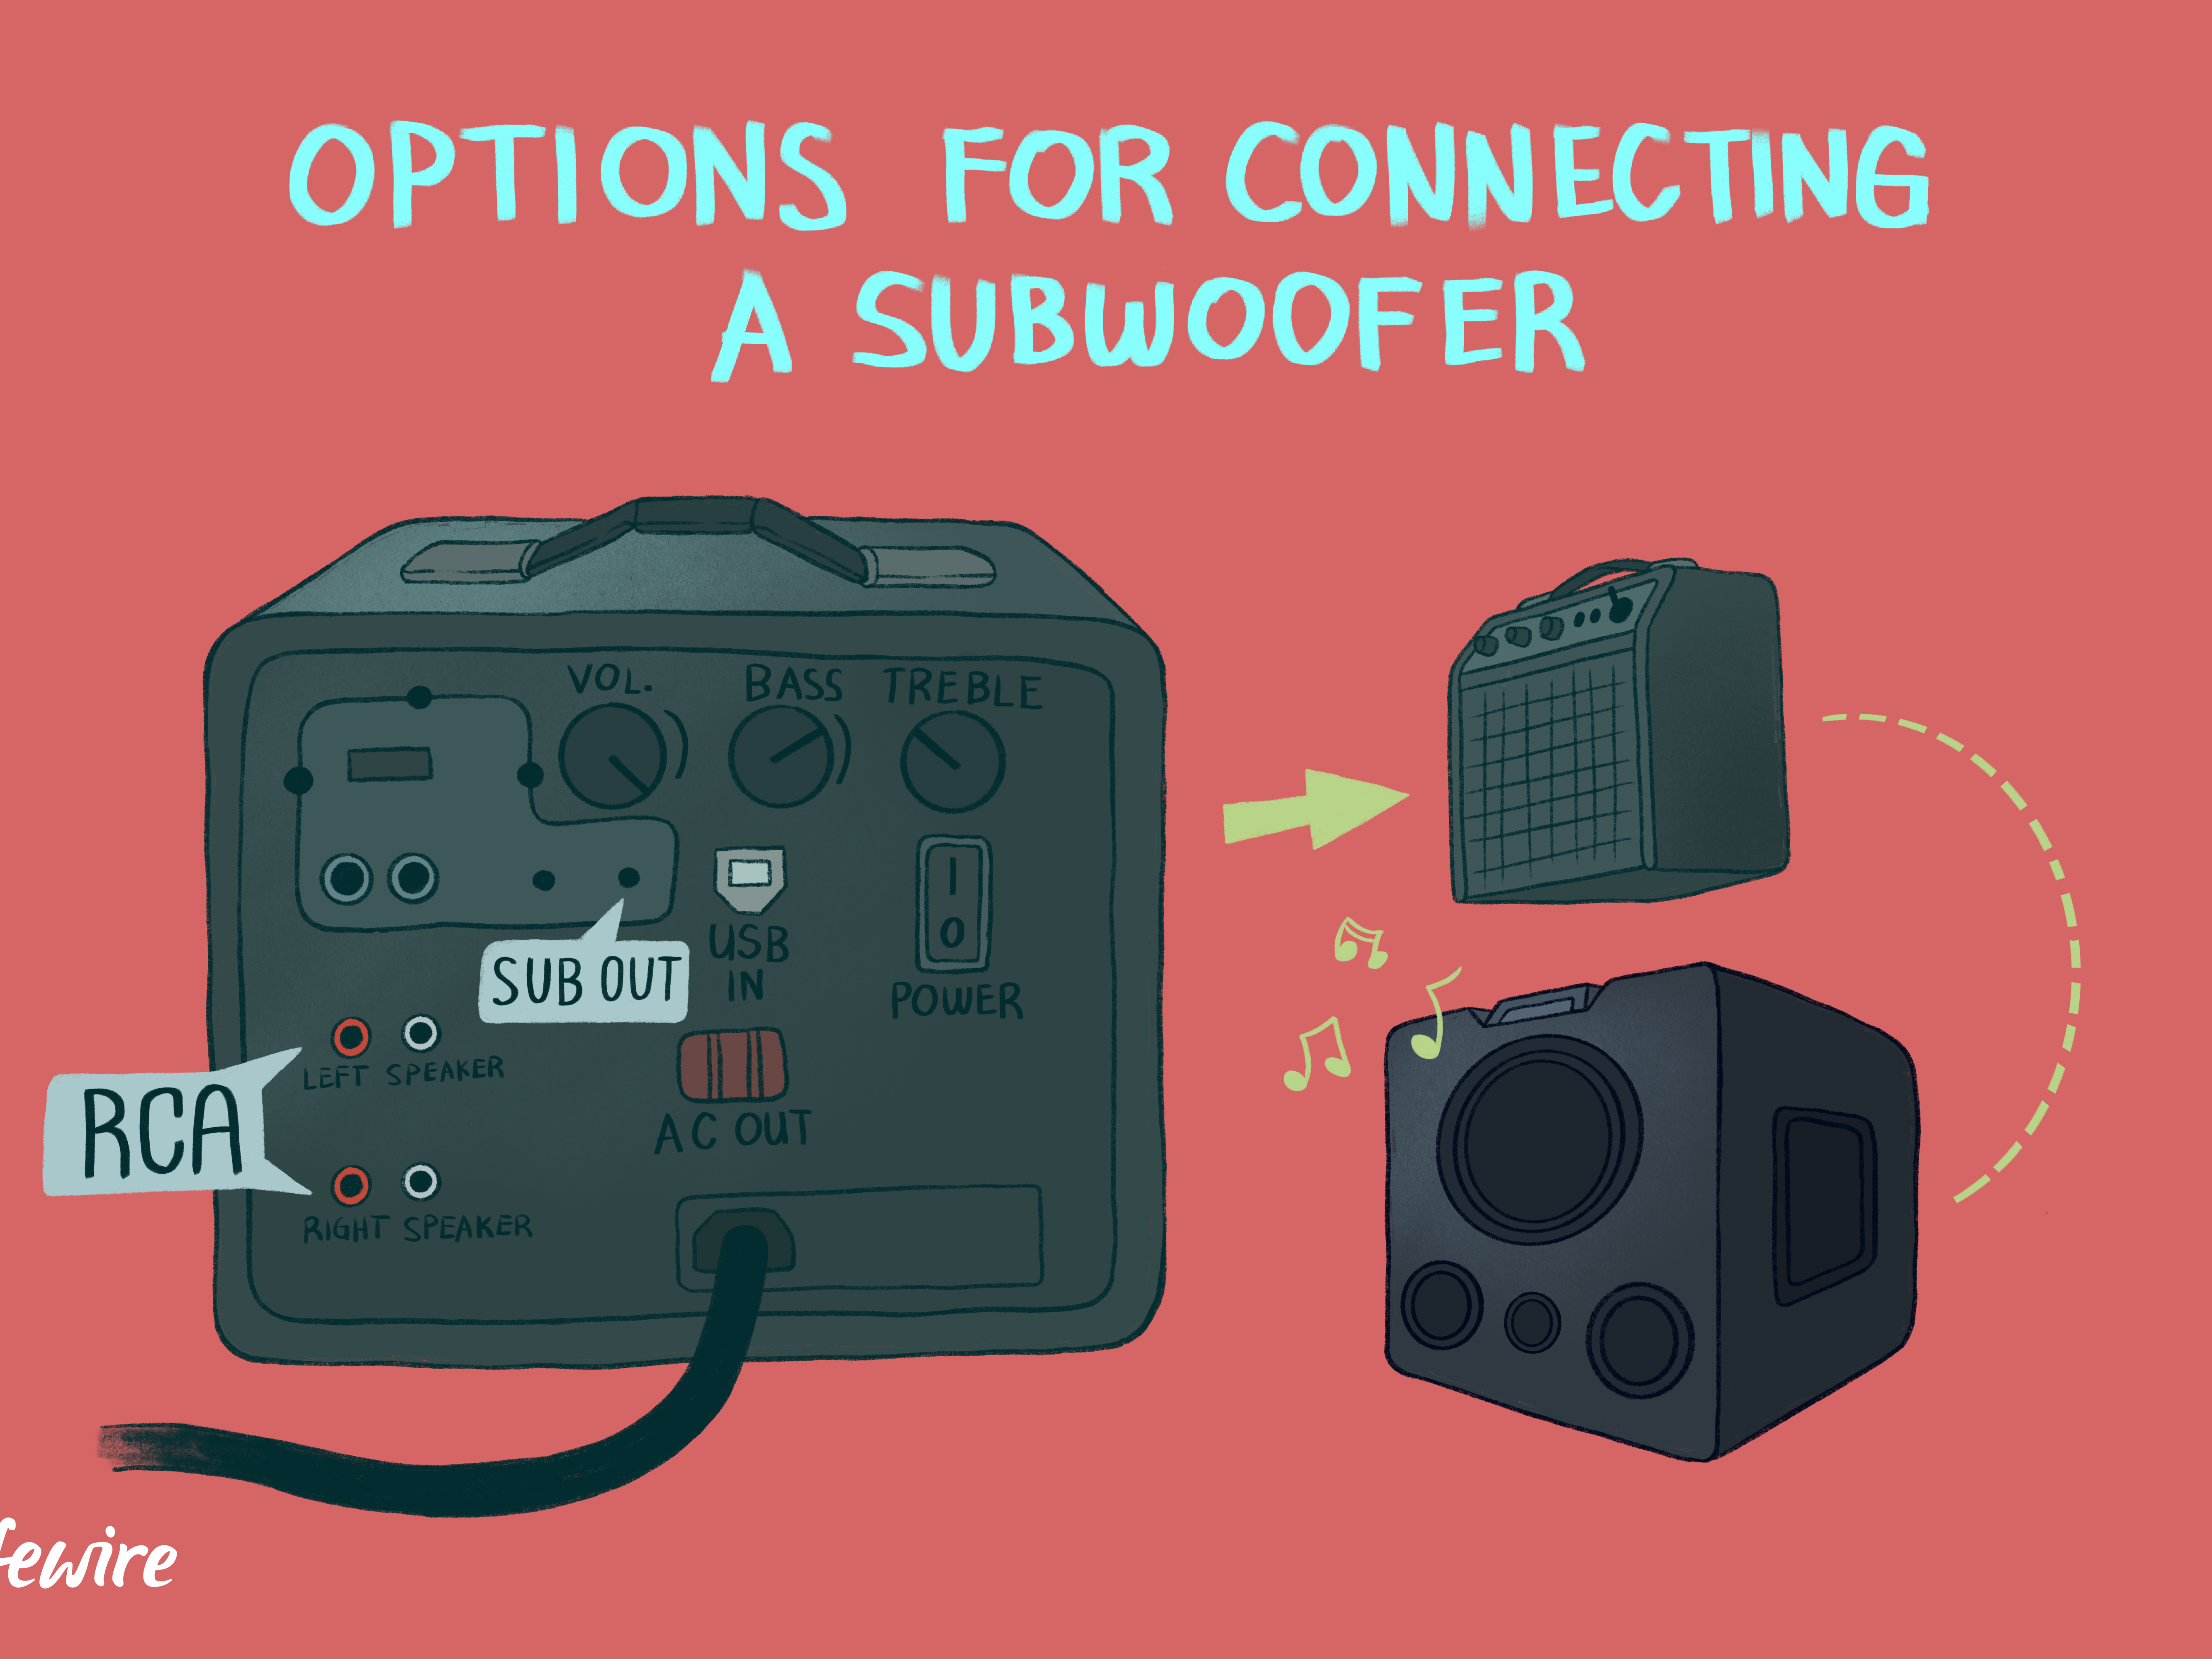 How to Connect a Subwoofer to a Receiver or Amplifier What Wiring Do I Need For Subwoofer on